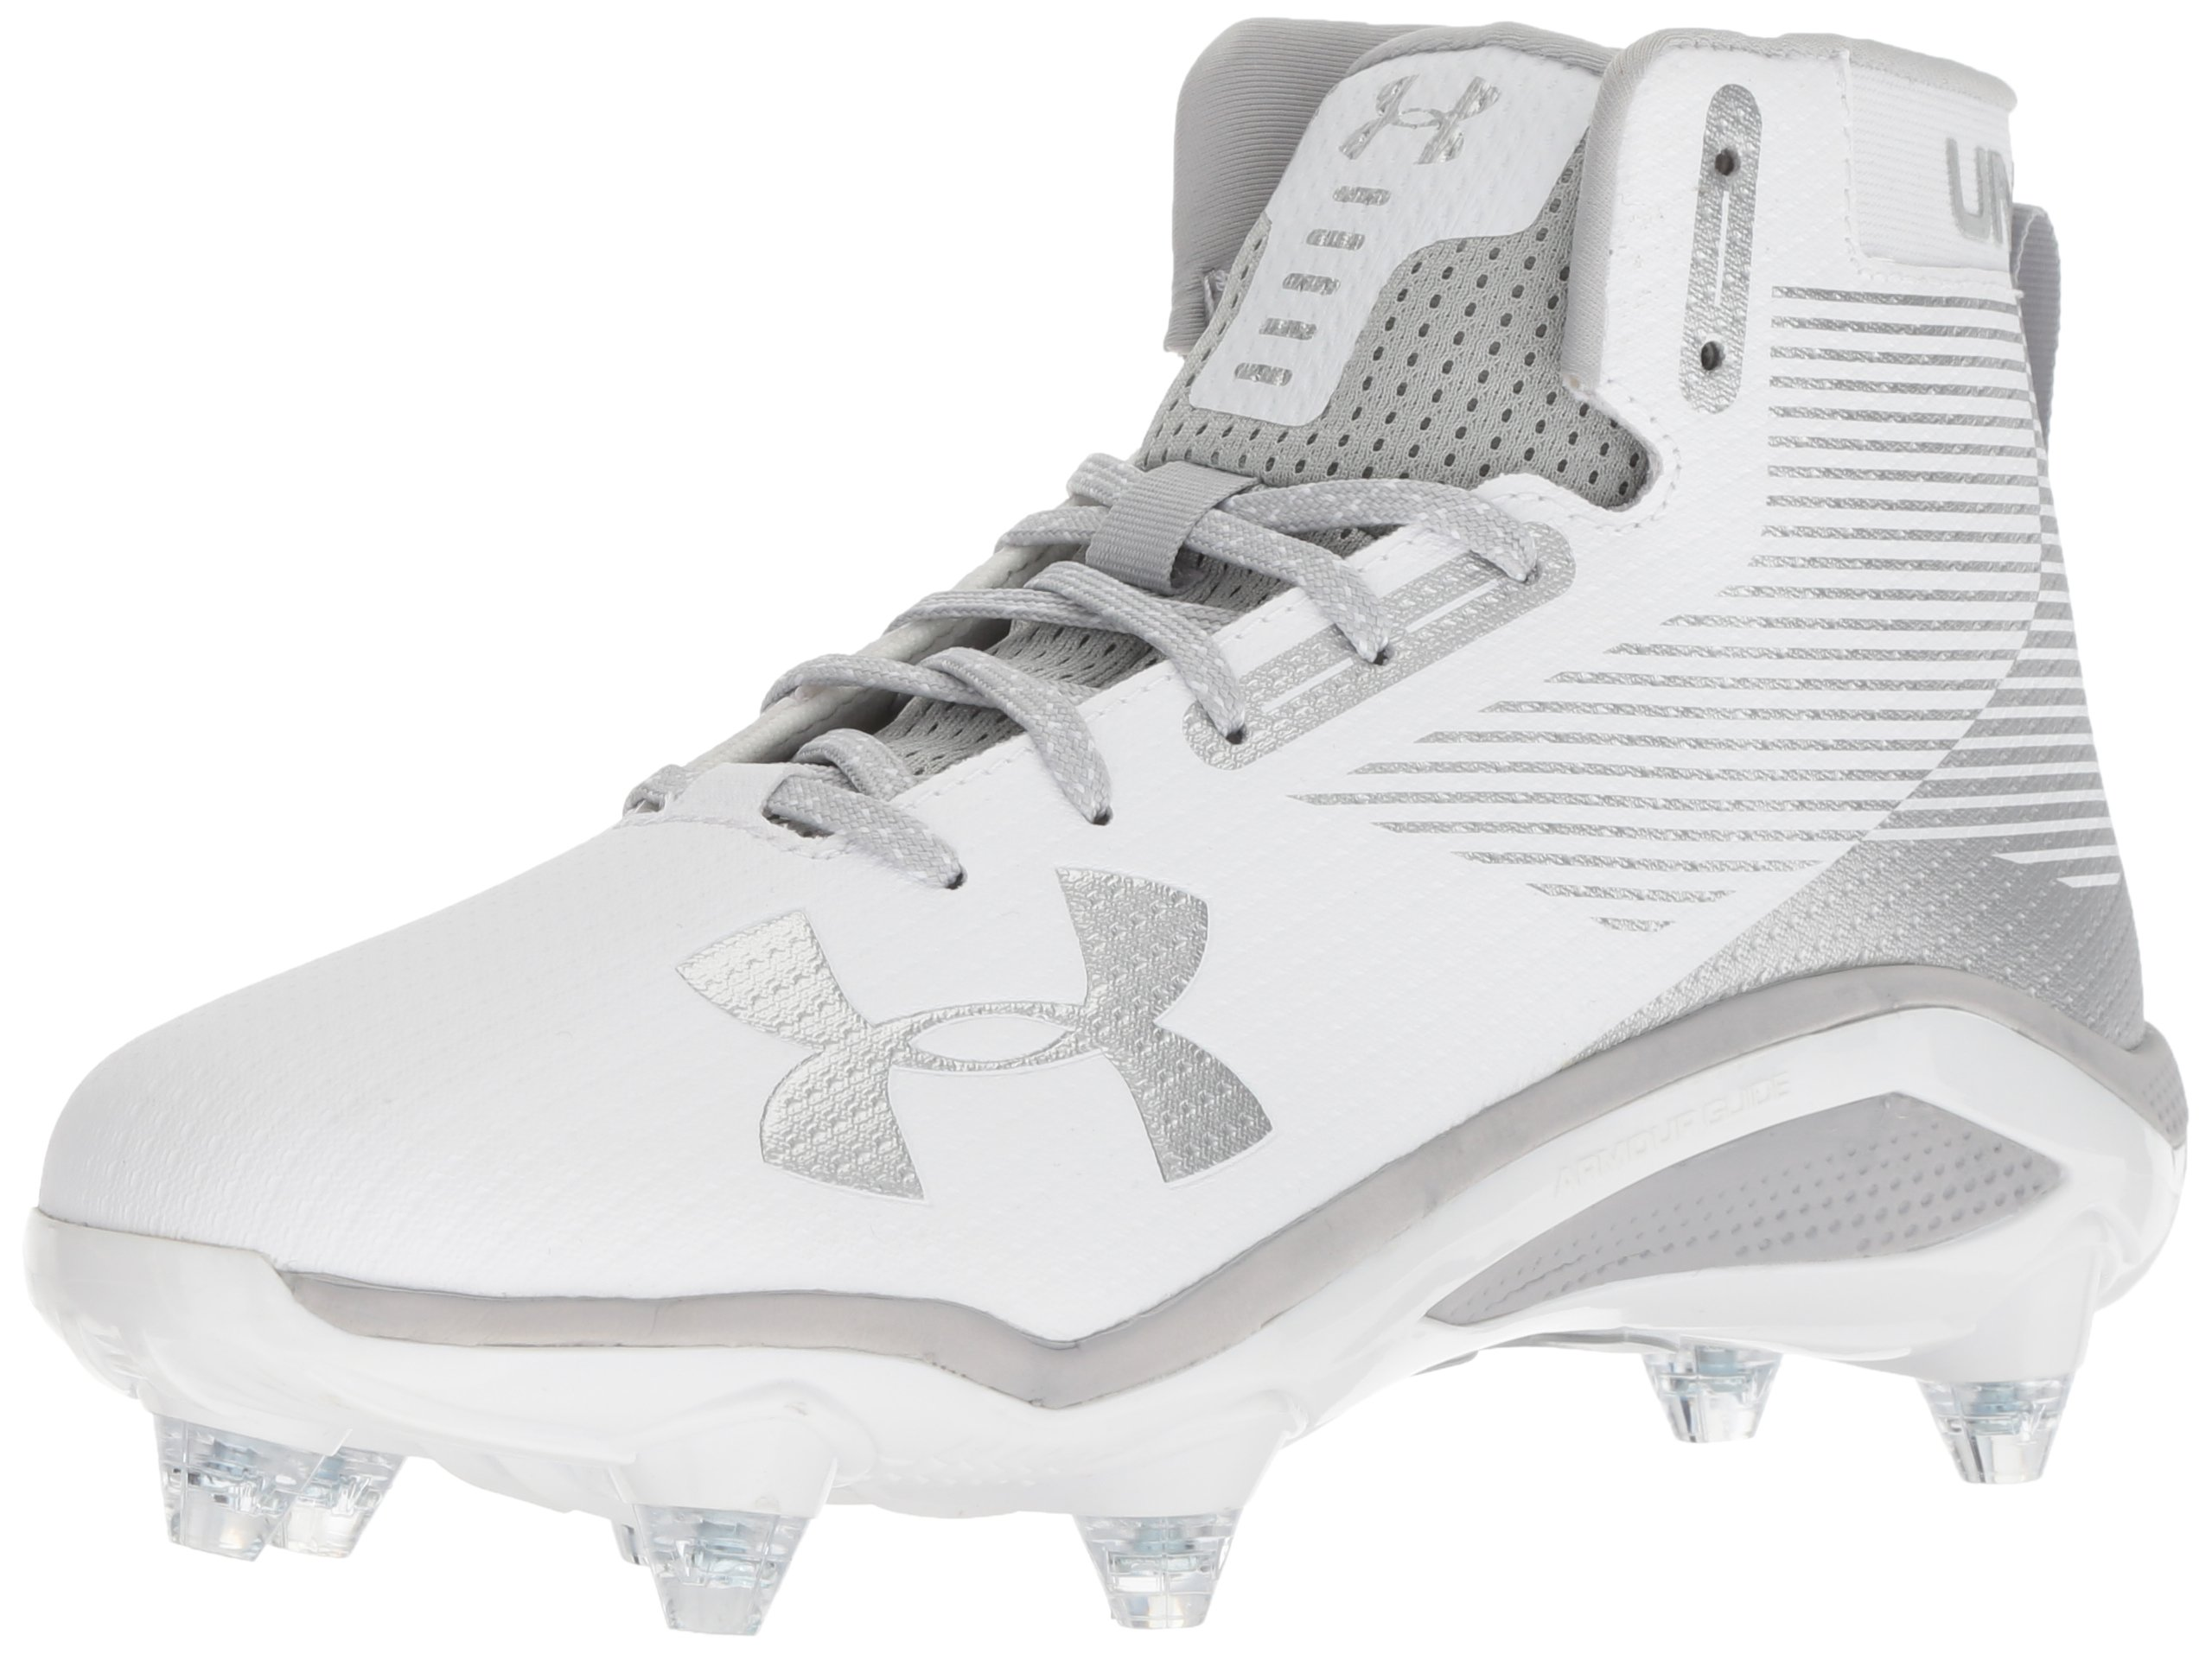 Under Armour Men's Hammer Detachable Football Shoe, White (102)/Metallic Silver, 11.5 by Under Armour